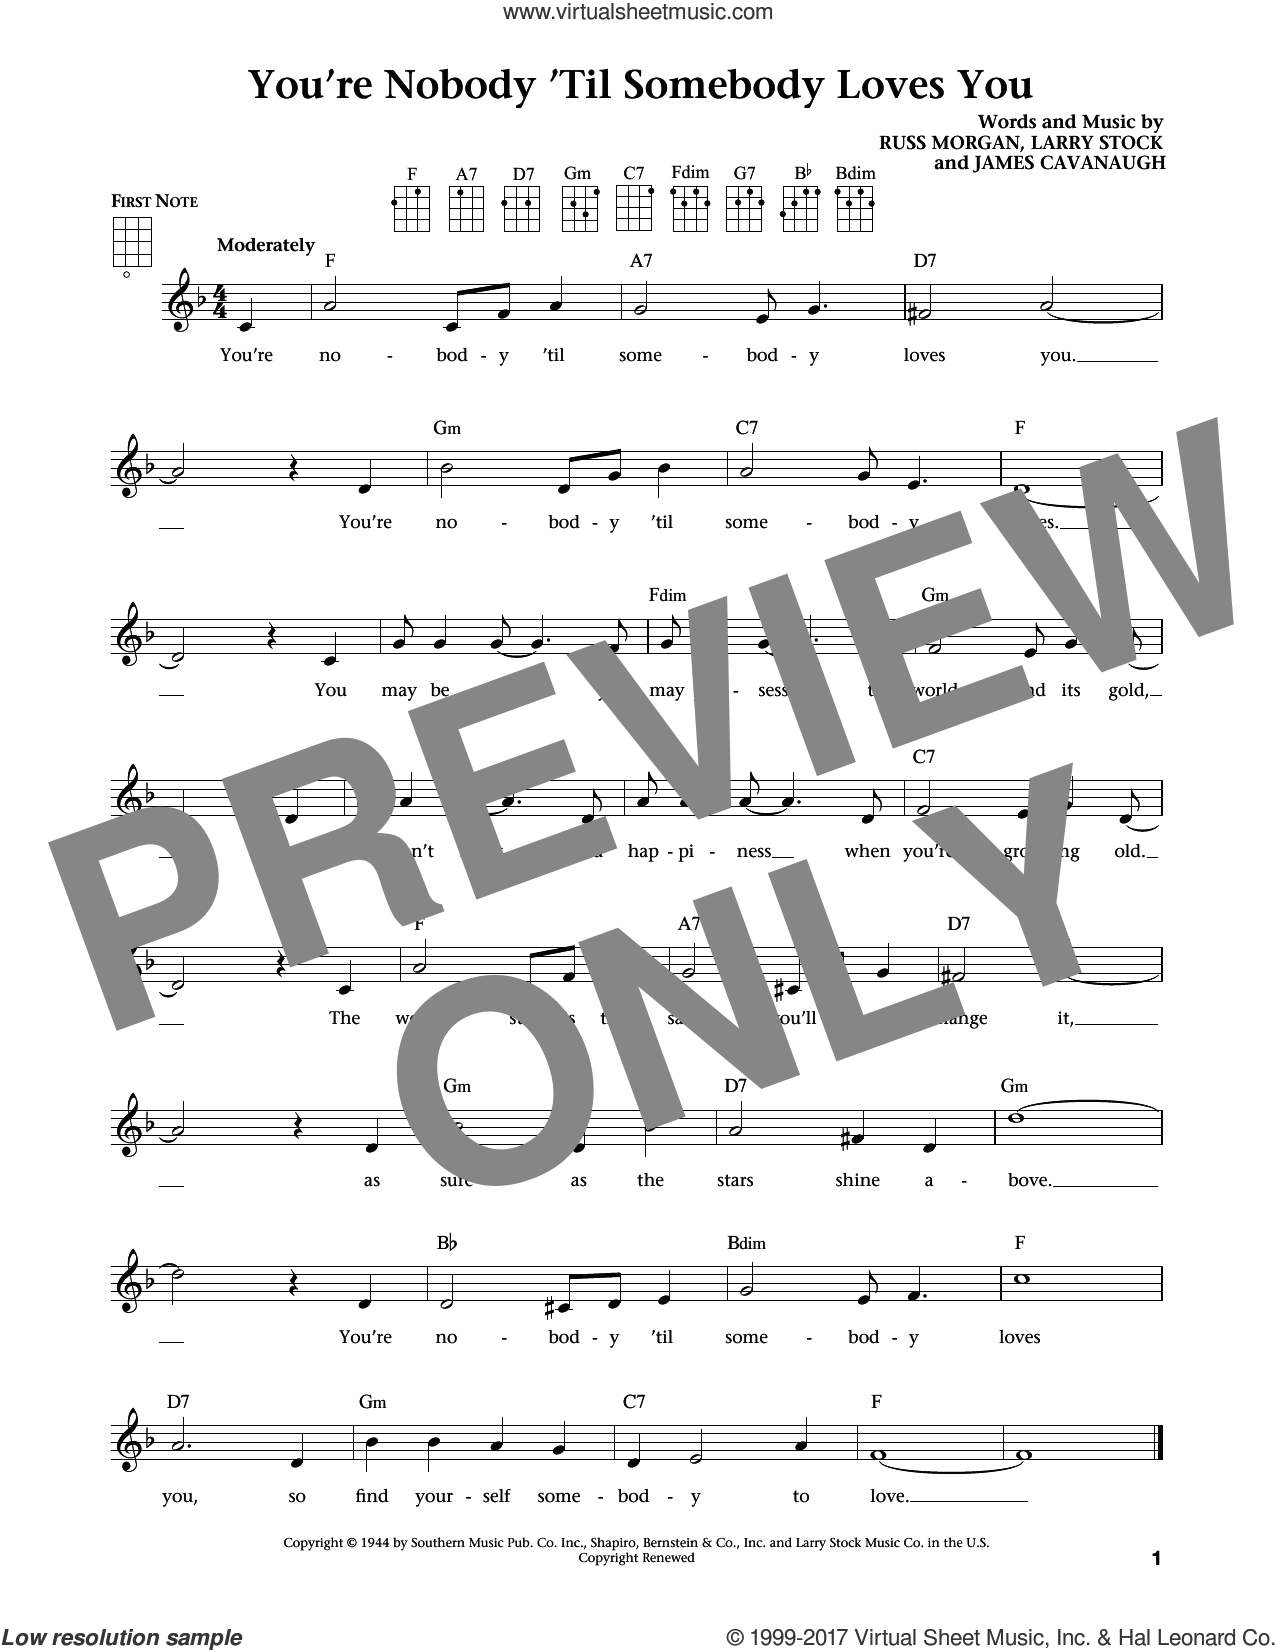 You're Nobody 'til Somebody Loves You sheet music for ukulele by James Cavanaugh, Dean Martin, Frank Sinatra, Larry Stock and Russ Morgan, intermediate ukulele. Score Image Preview.